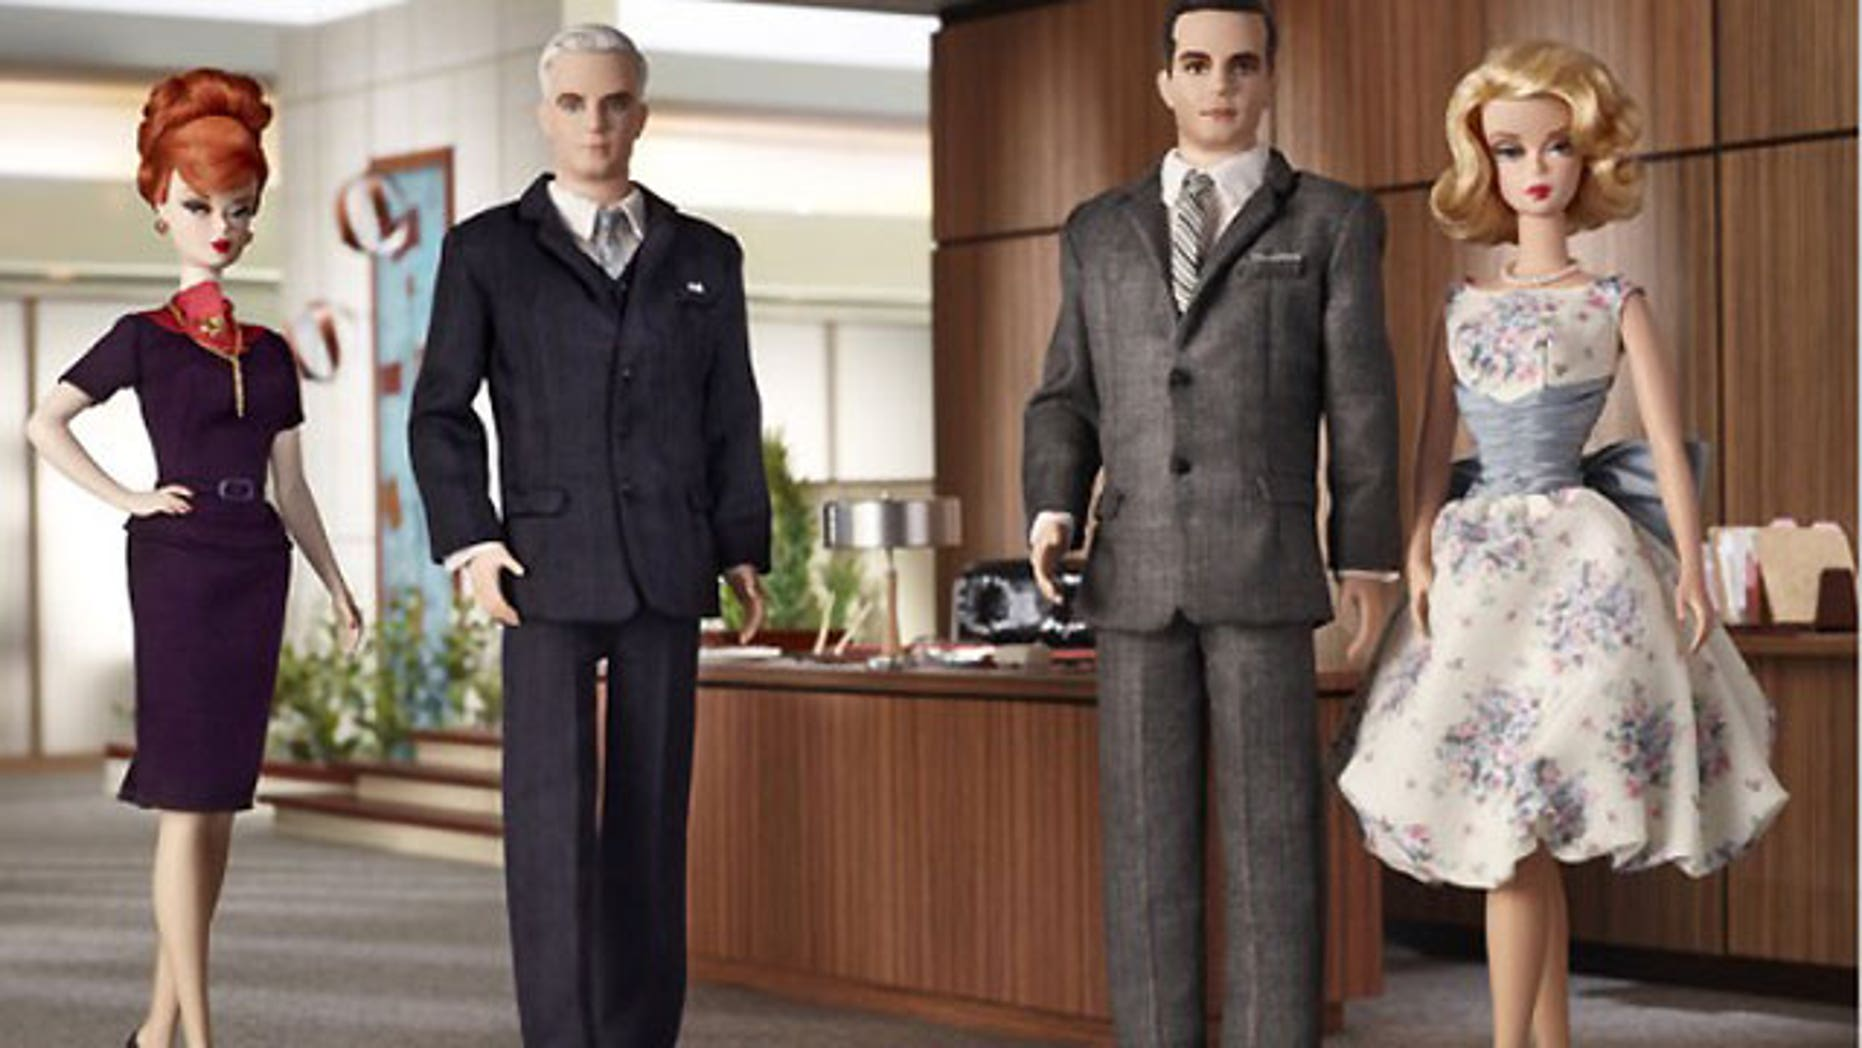 A line of barbies based on the characters of the AMC drama 'Mad Men' is now available for purchase.